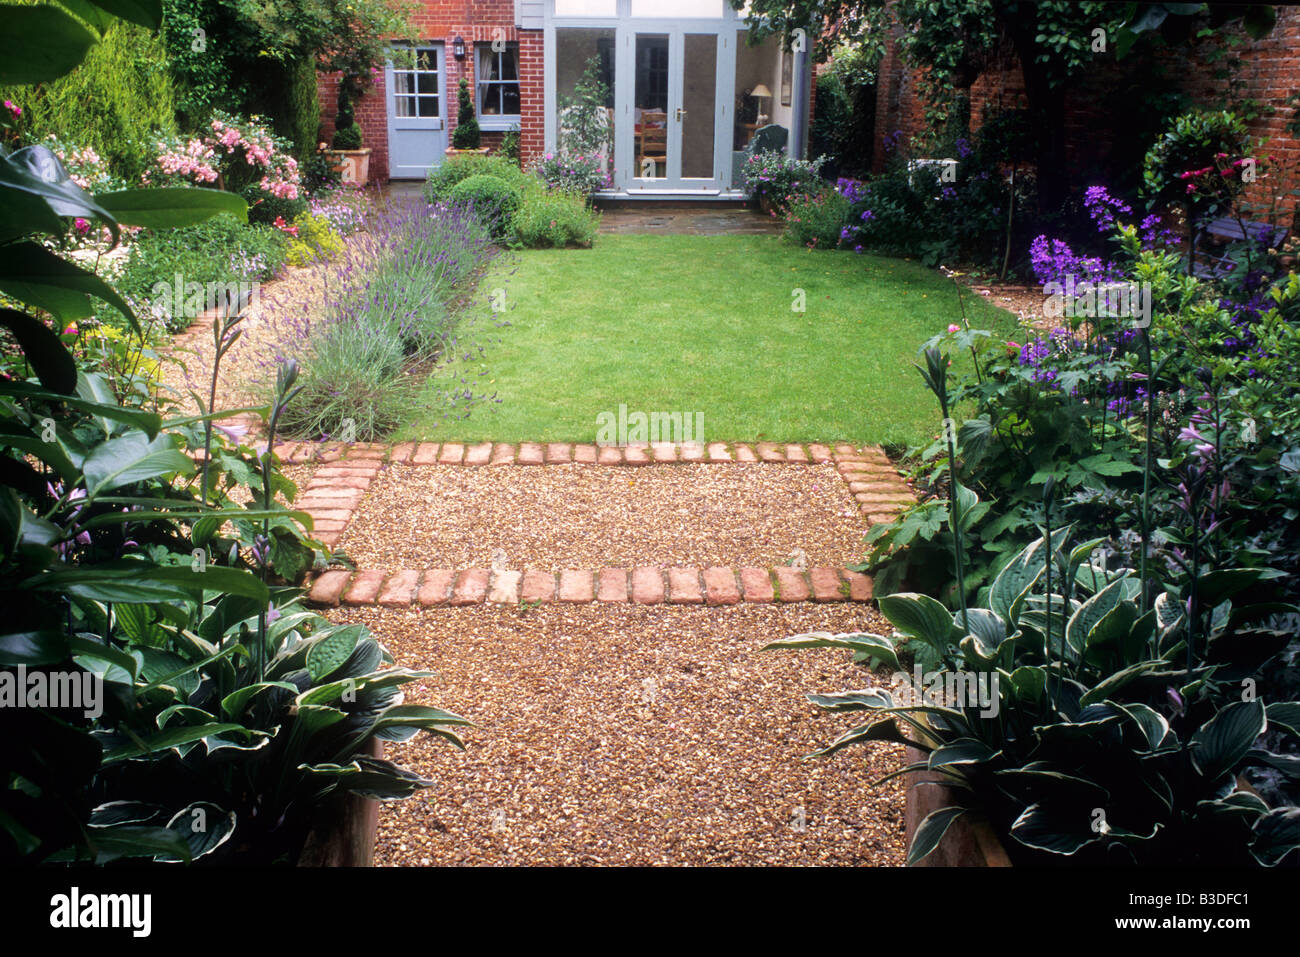 Path gravel brick small back garden design lawn house border